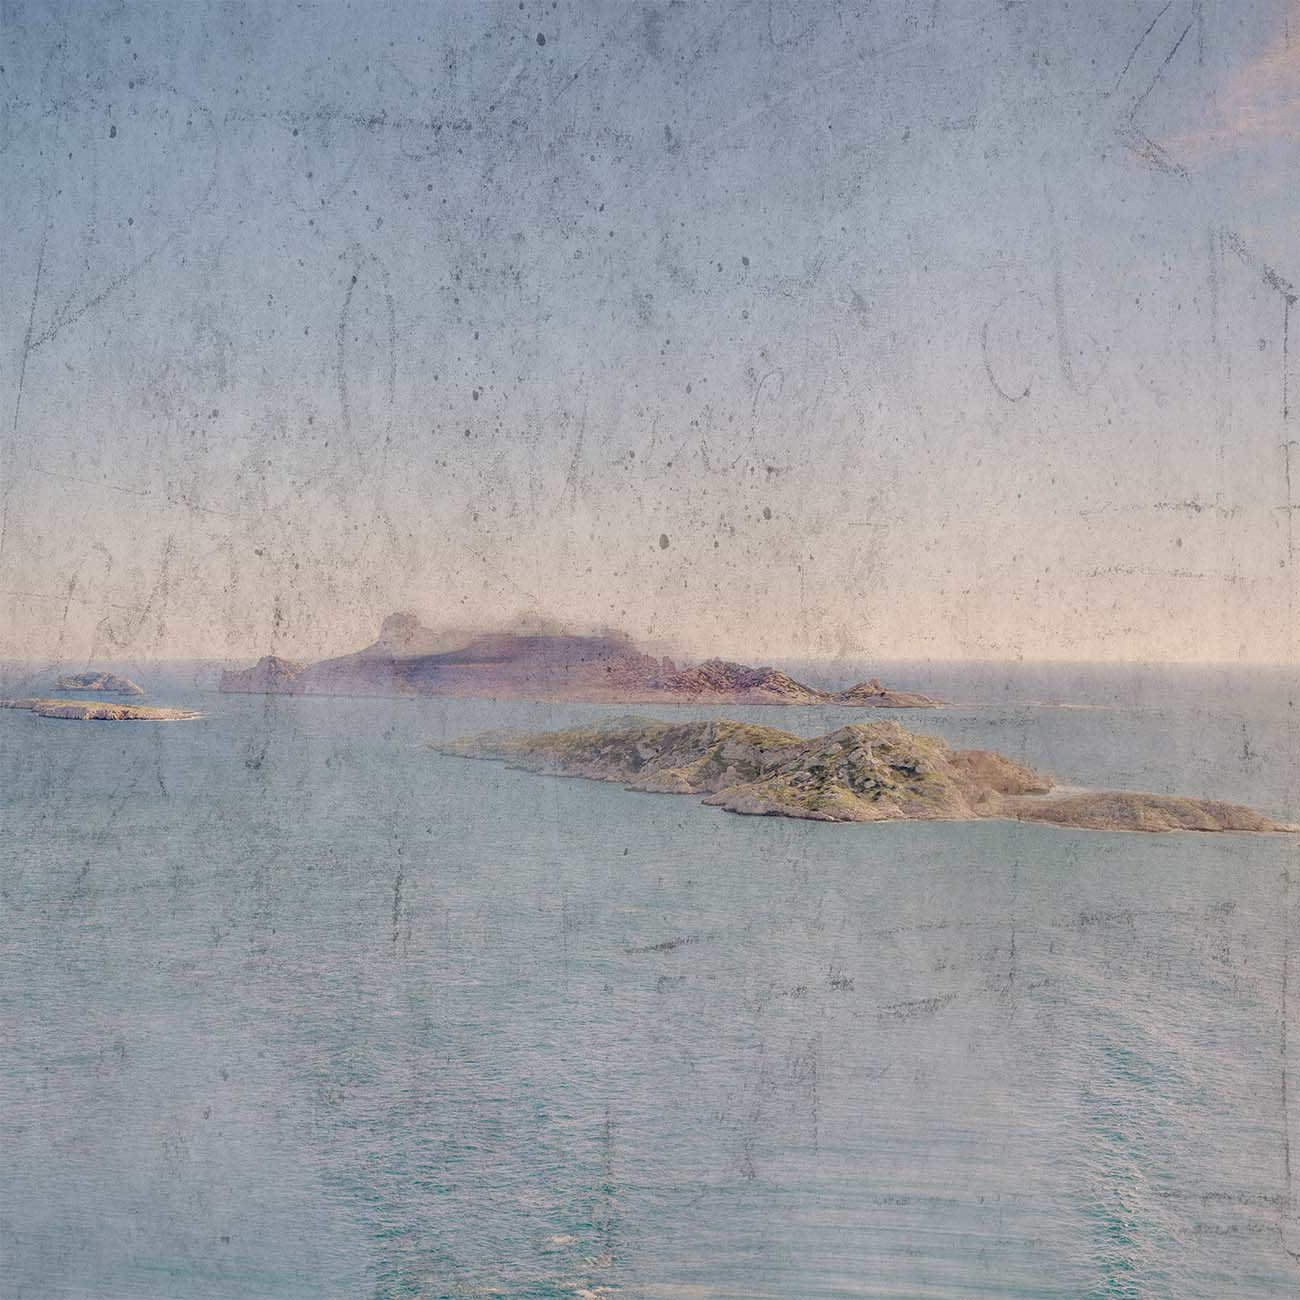 Riou Calanques Bleu Marseille Paul-Louis LEGER Photographe